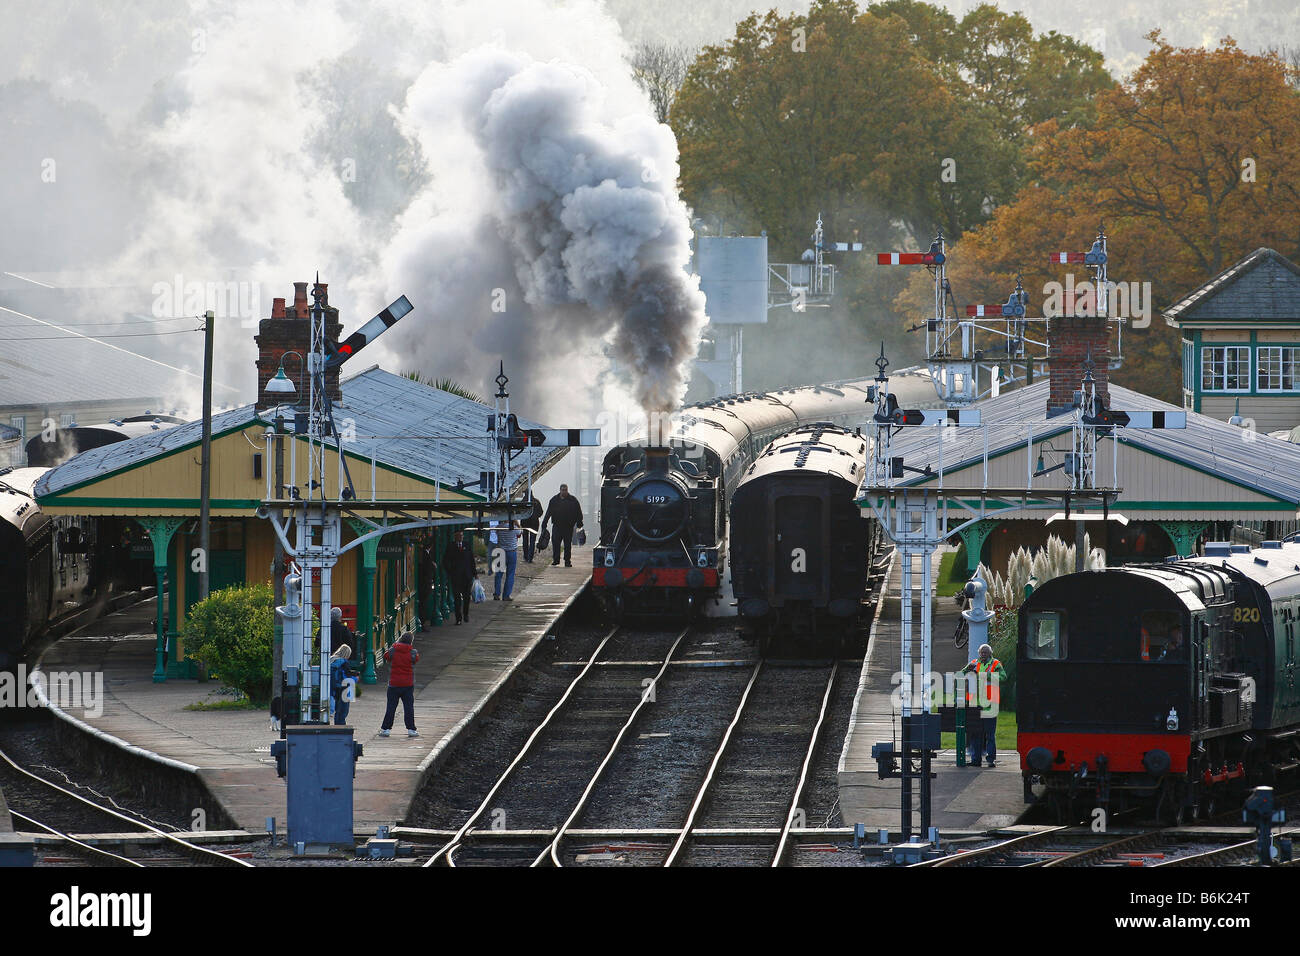 Great Western Railways Large Prairie Tank No 5199 arrives at Horsted Keynes Station. Picture by James Boardman - Stock Image